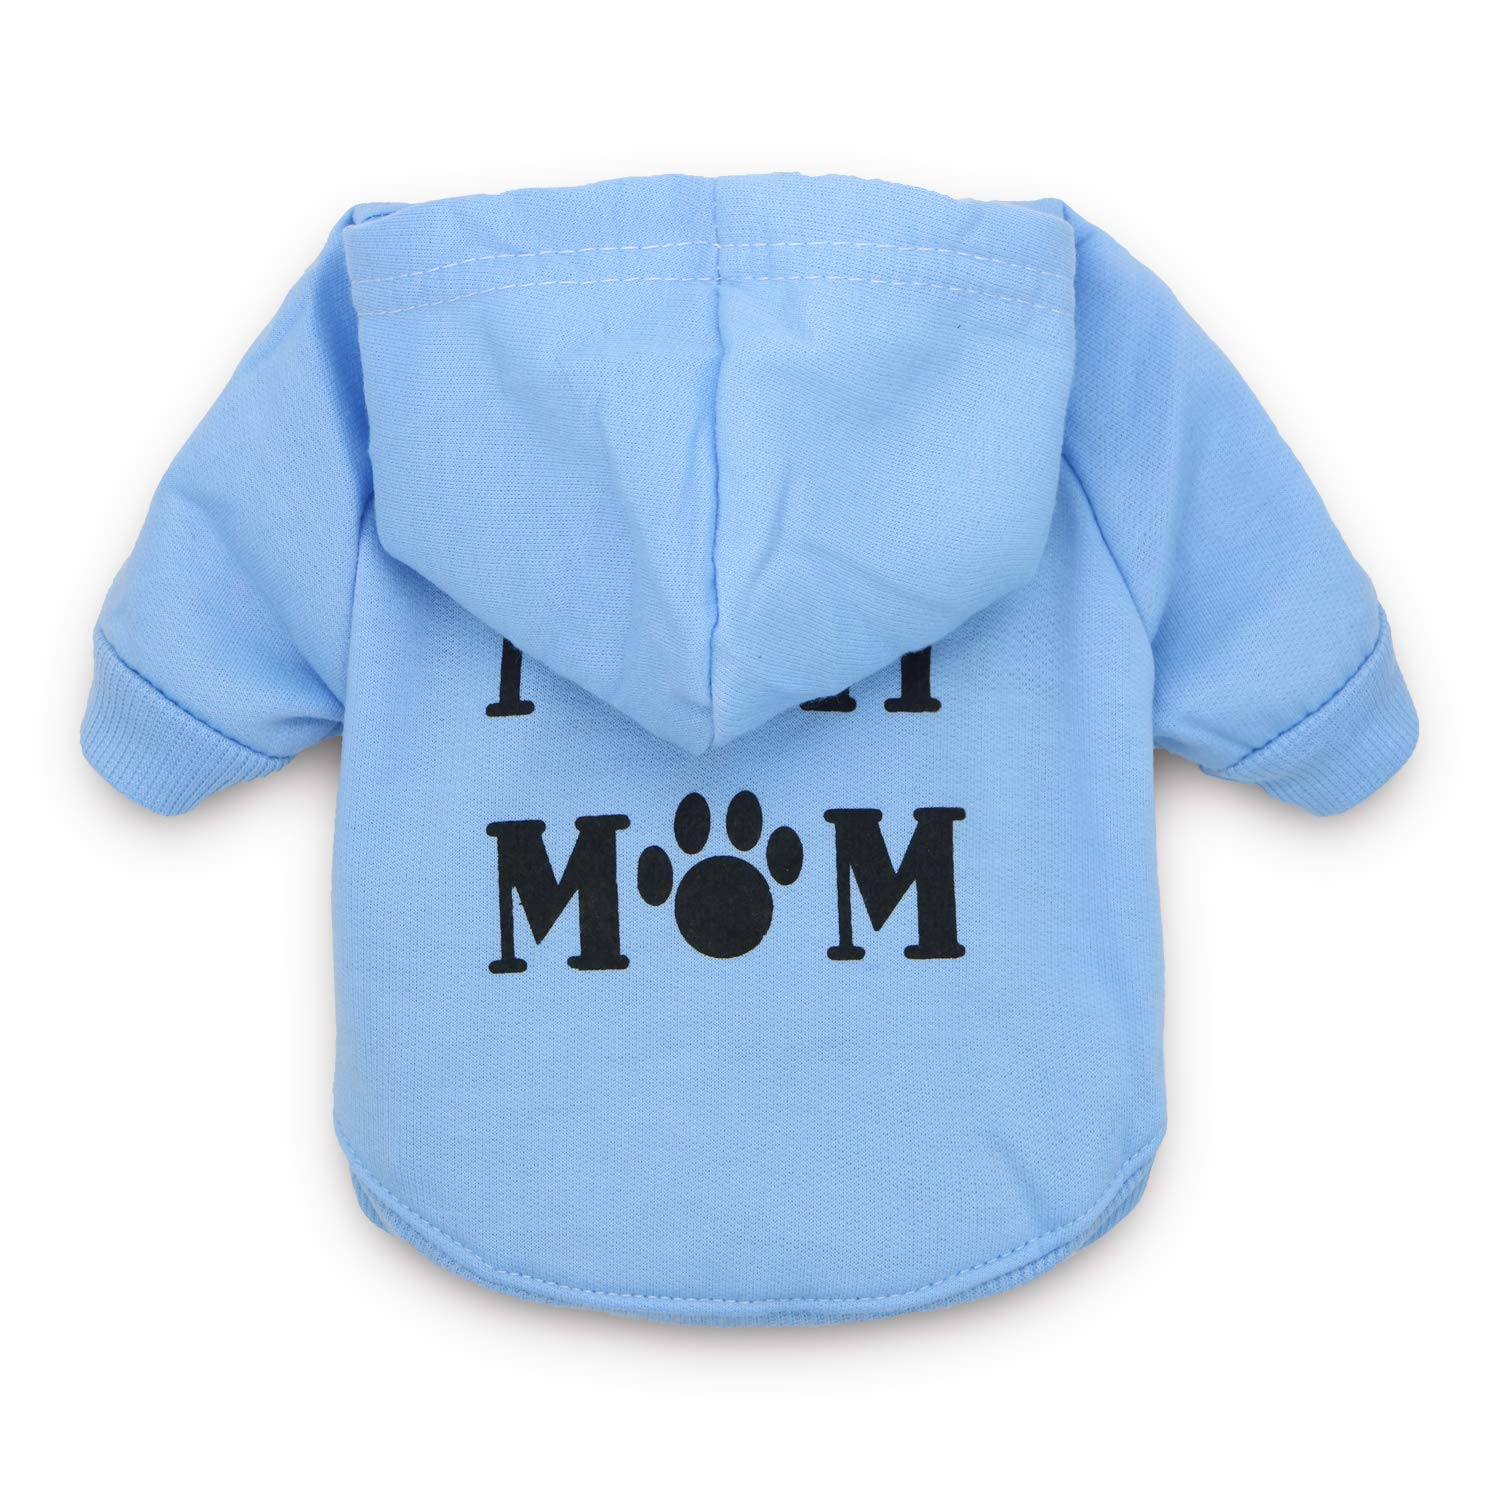 DroolingDog Dog Hoodies I Love My Mom Clothes Puppy T Shirt for Small Dogs, Small, Blue